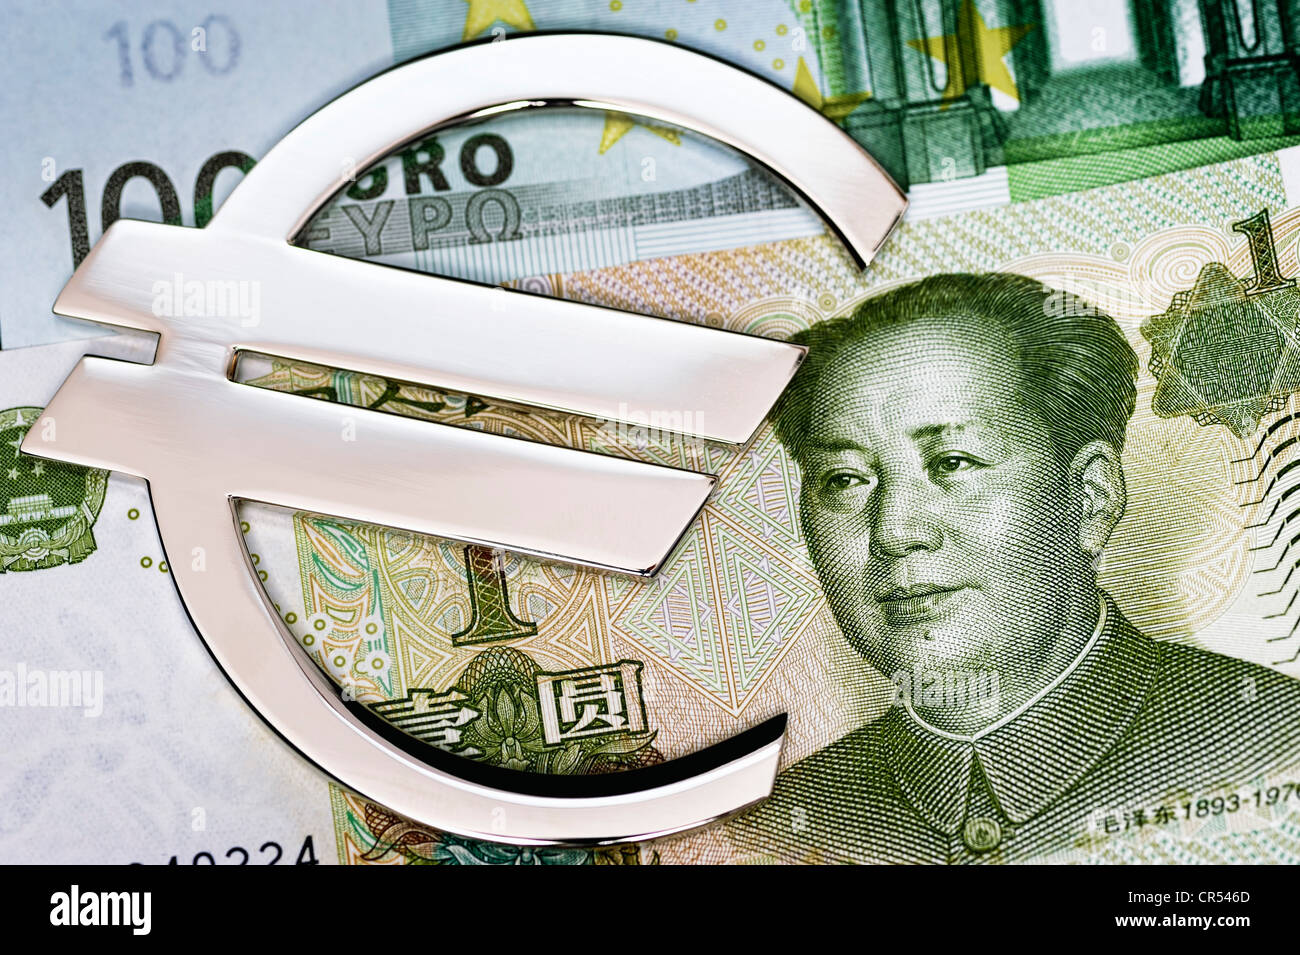 Chinese yuan and a euro sign, symbolic image, China offered help for the euro - Stock Image